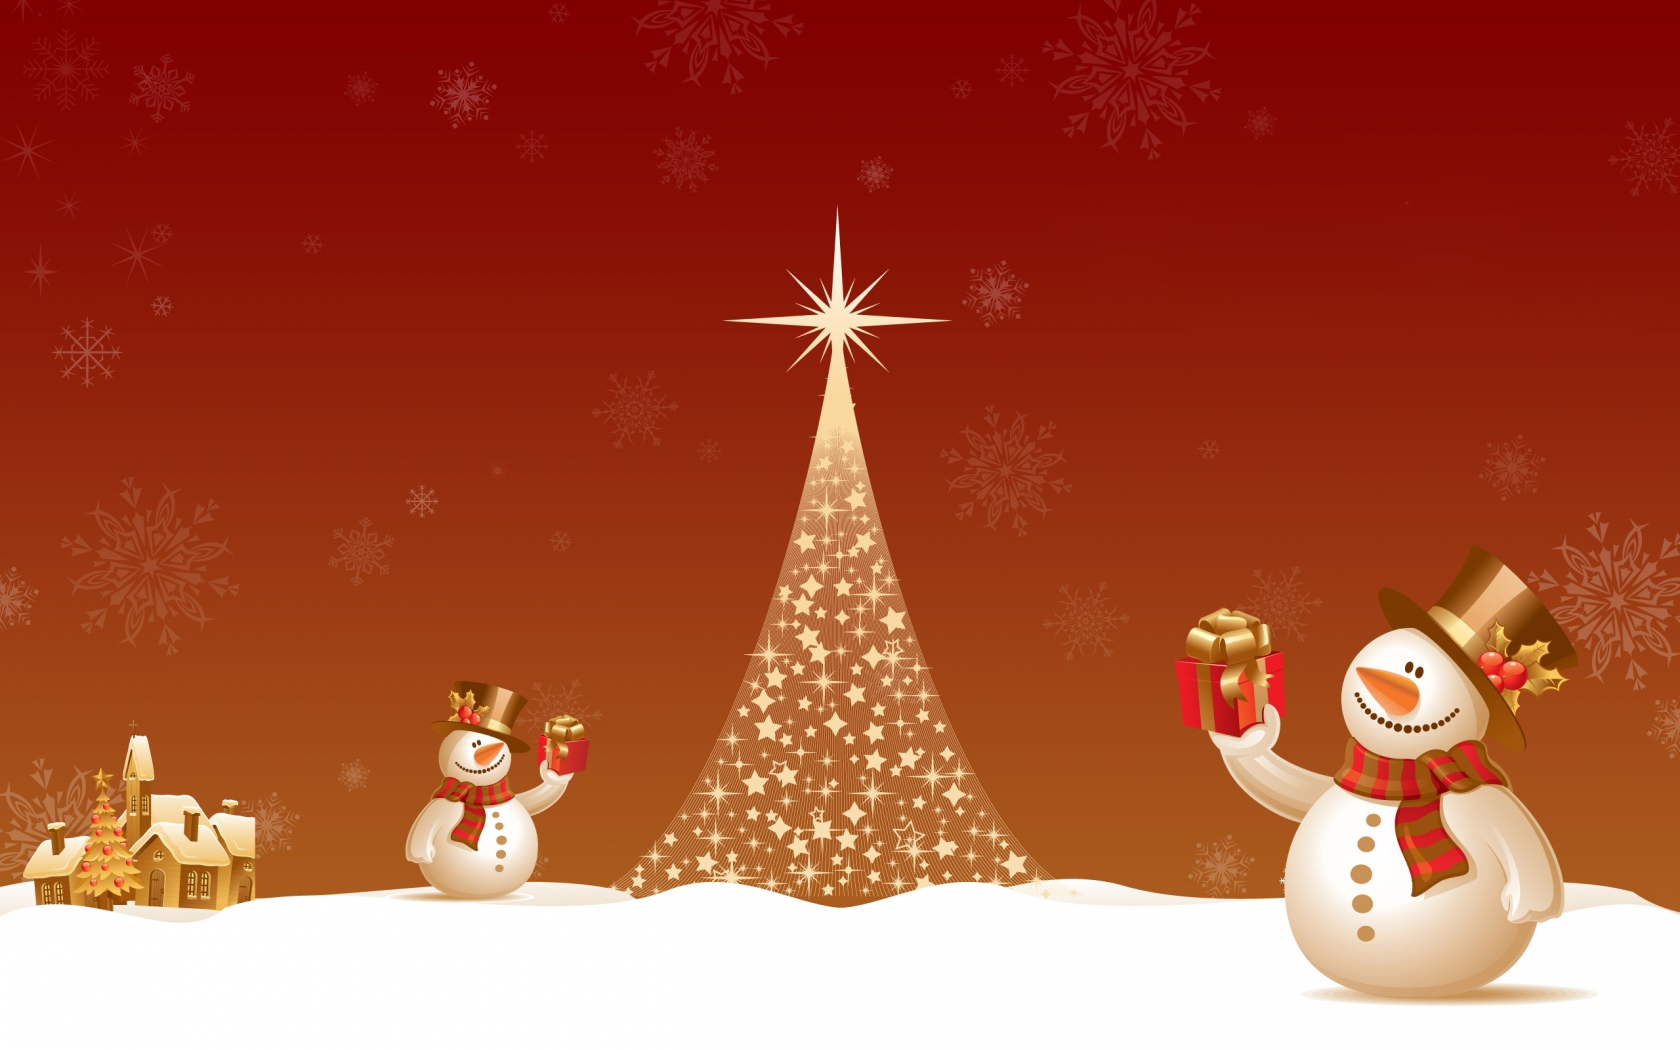 Snowman Close to Christmas Tree for 1680 x 1050 widescreen resolution